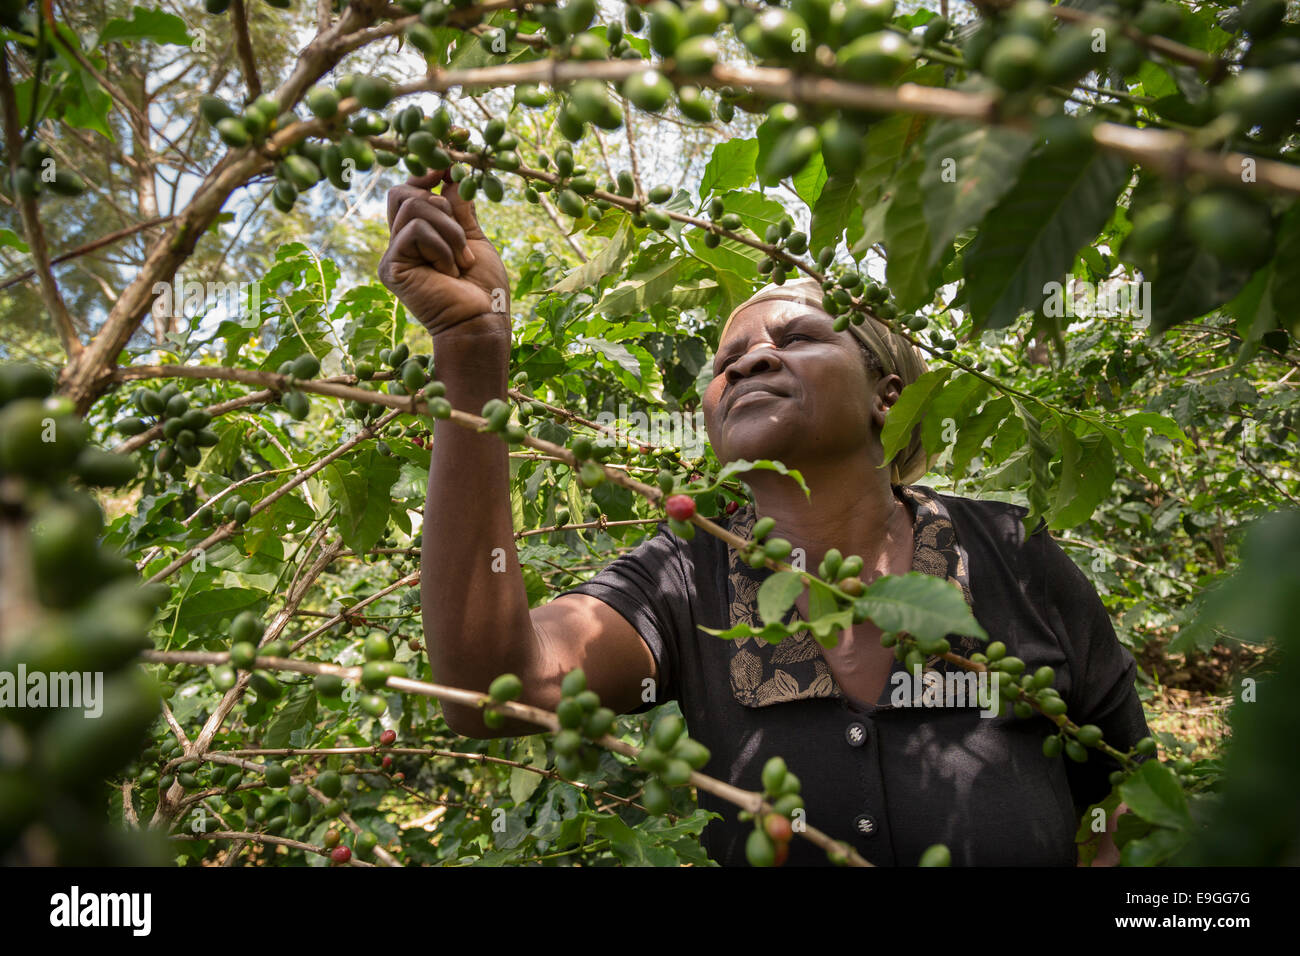 A small farmer picks coffee cherries in her field. - Stock Image